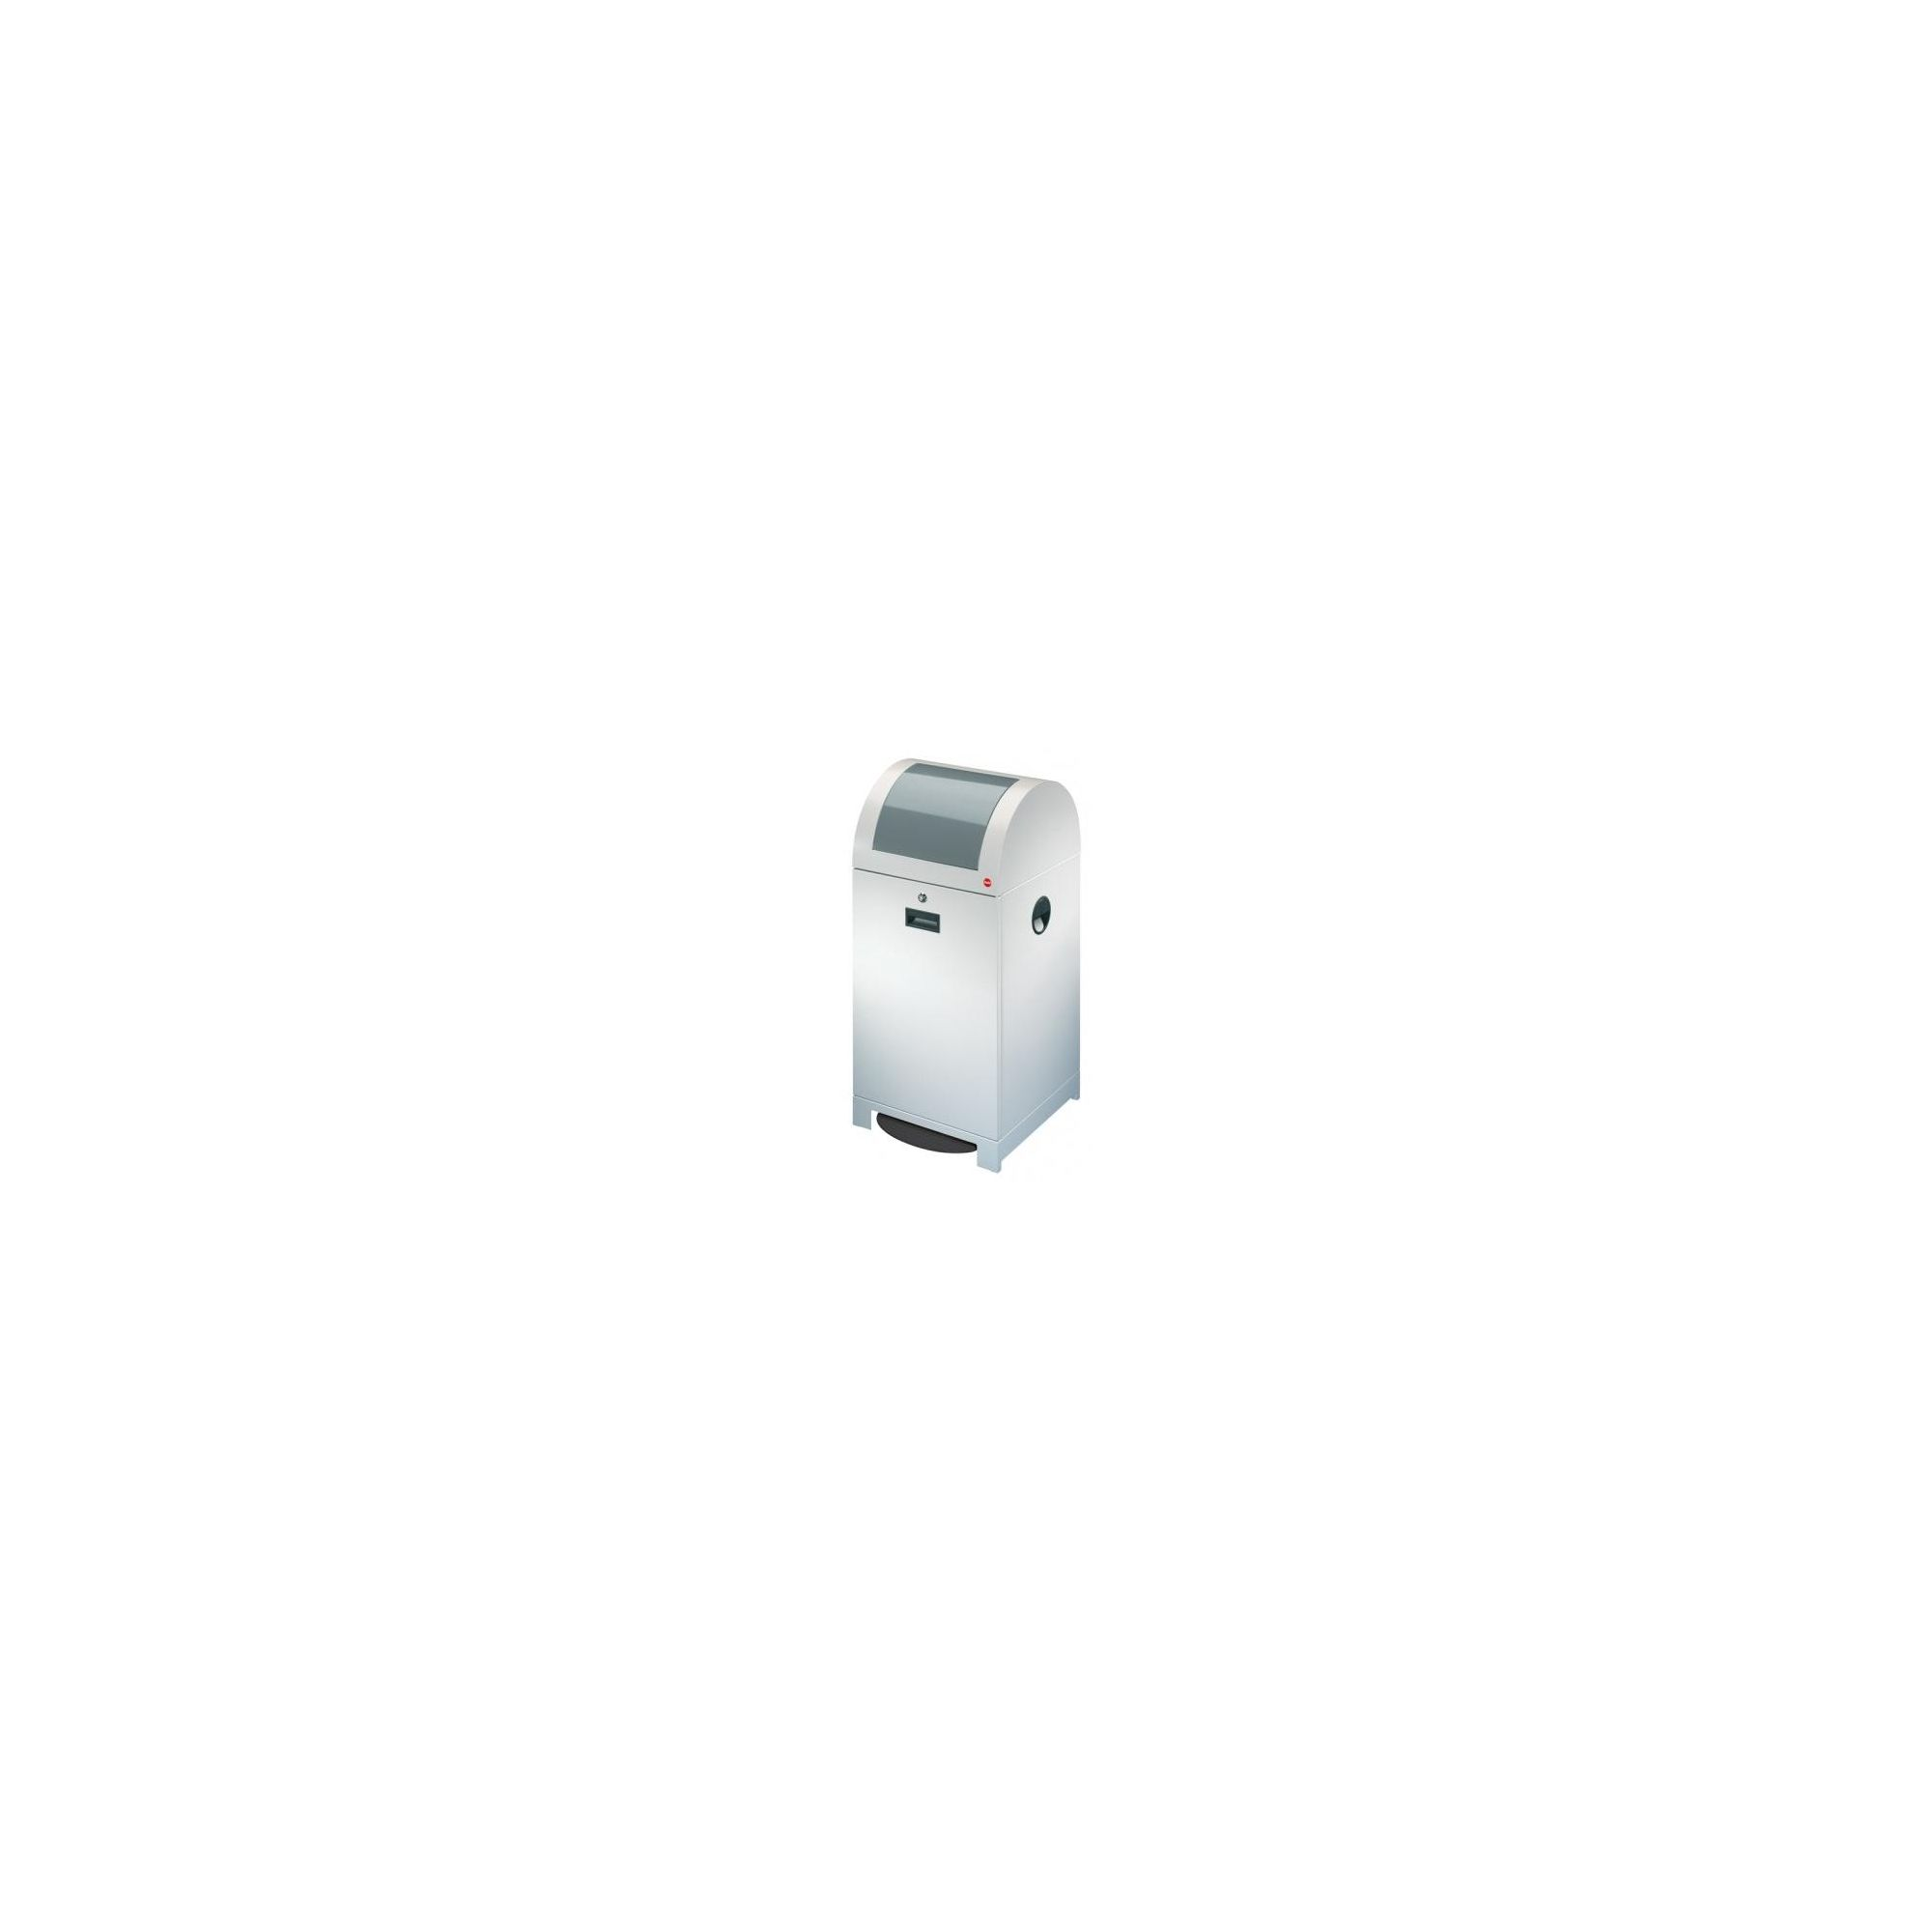 Hailo ProfiLine WSB 40P Recycling and Waste Bin with Bin Liner Holder at Tesco Direct